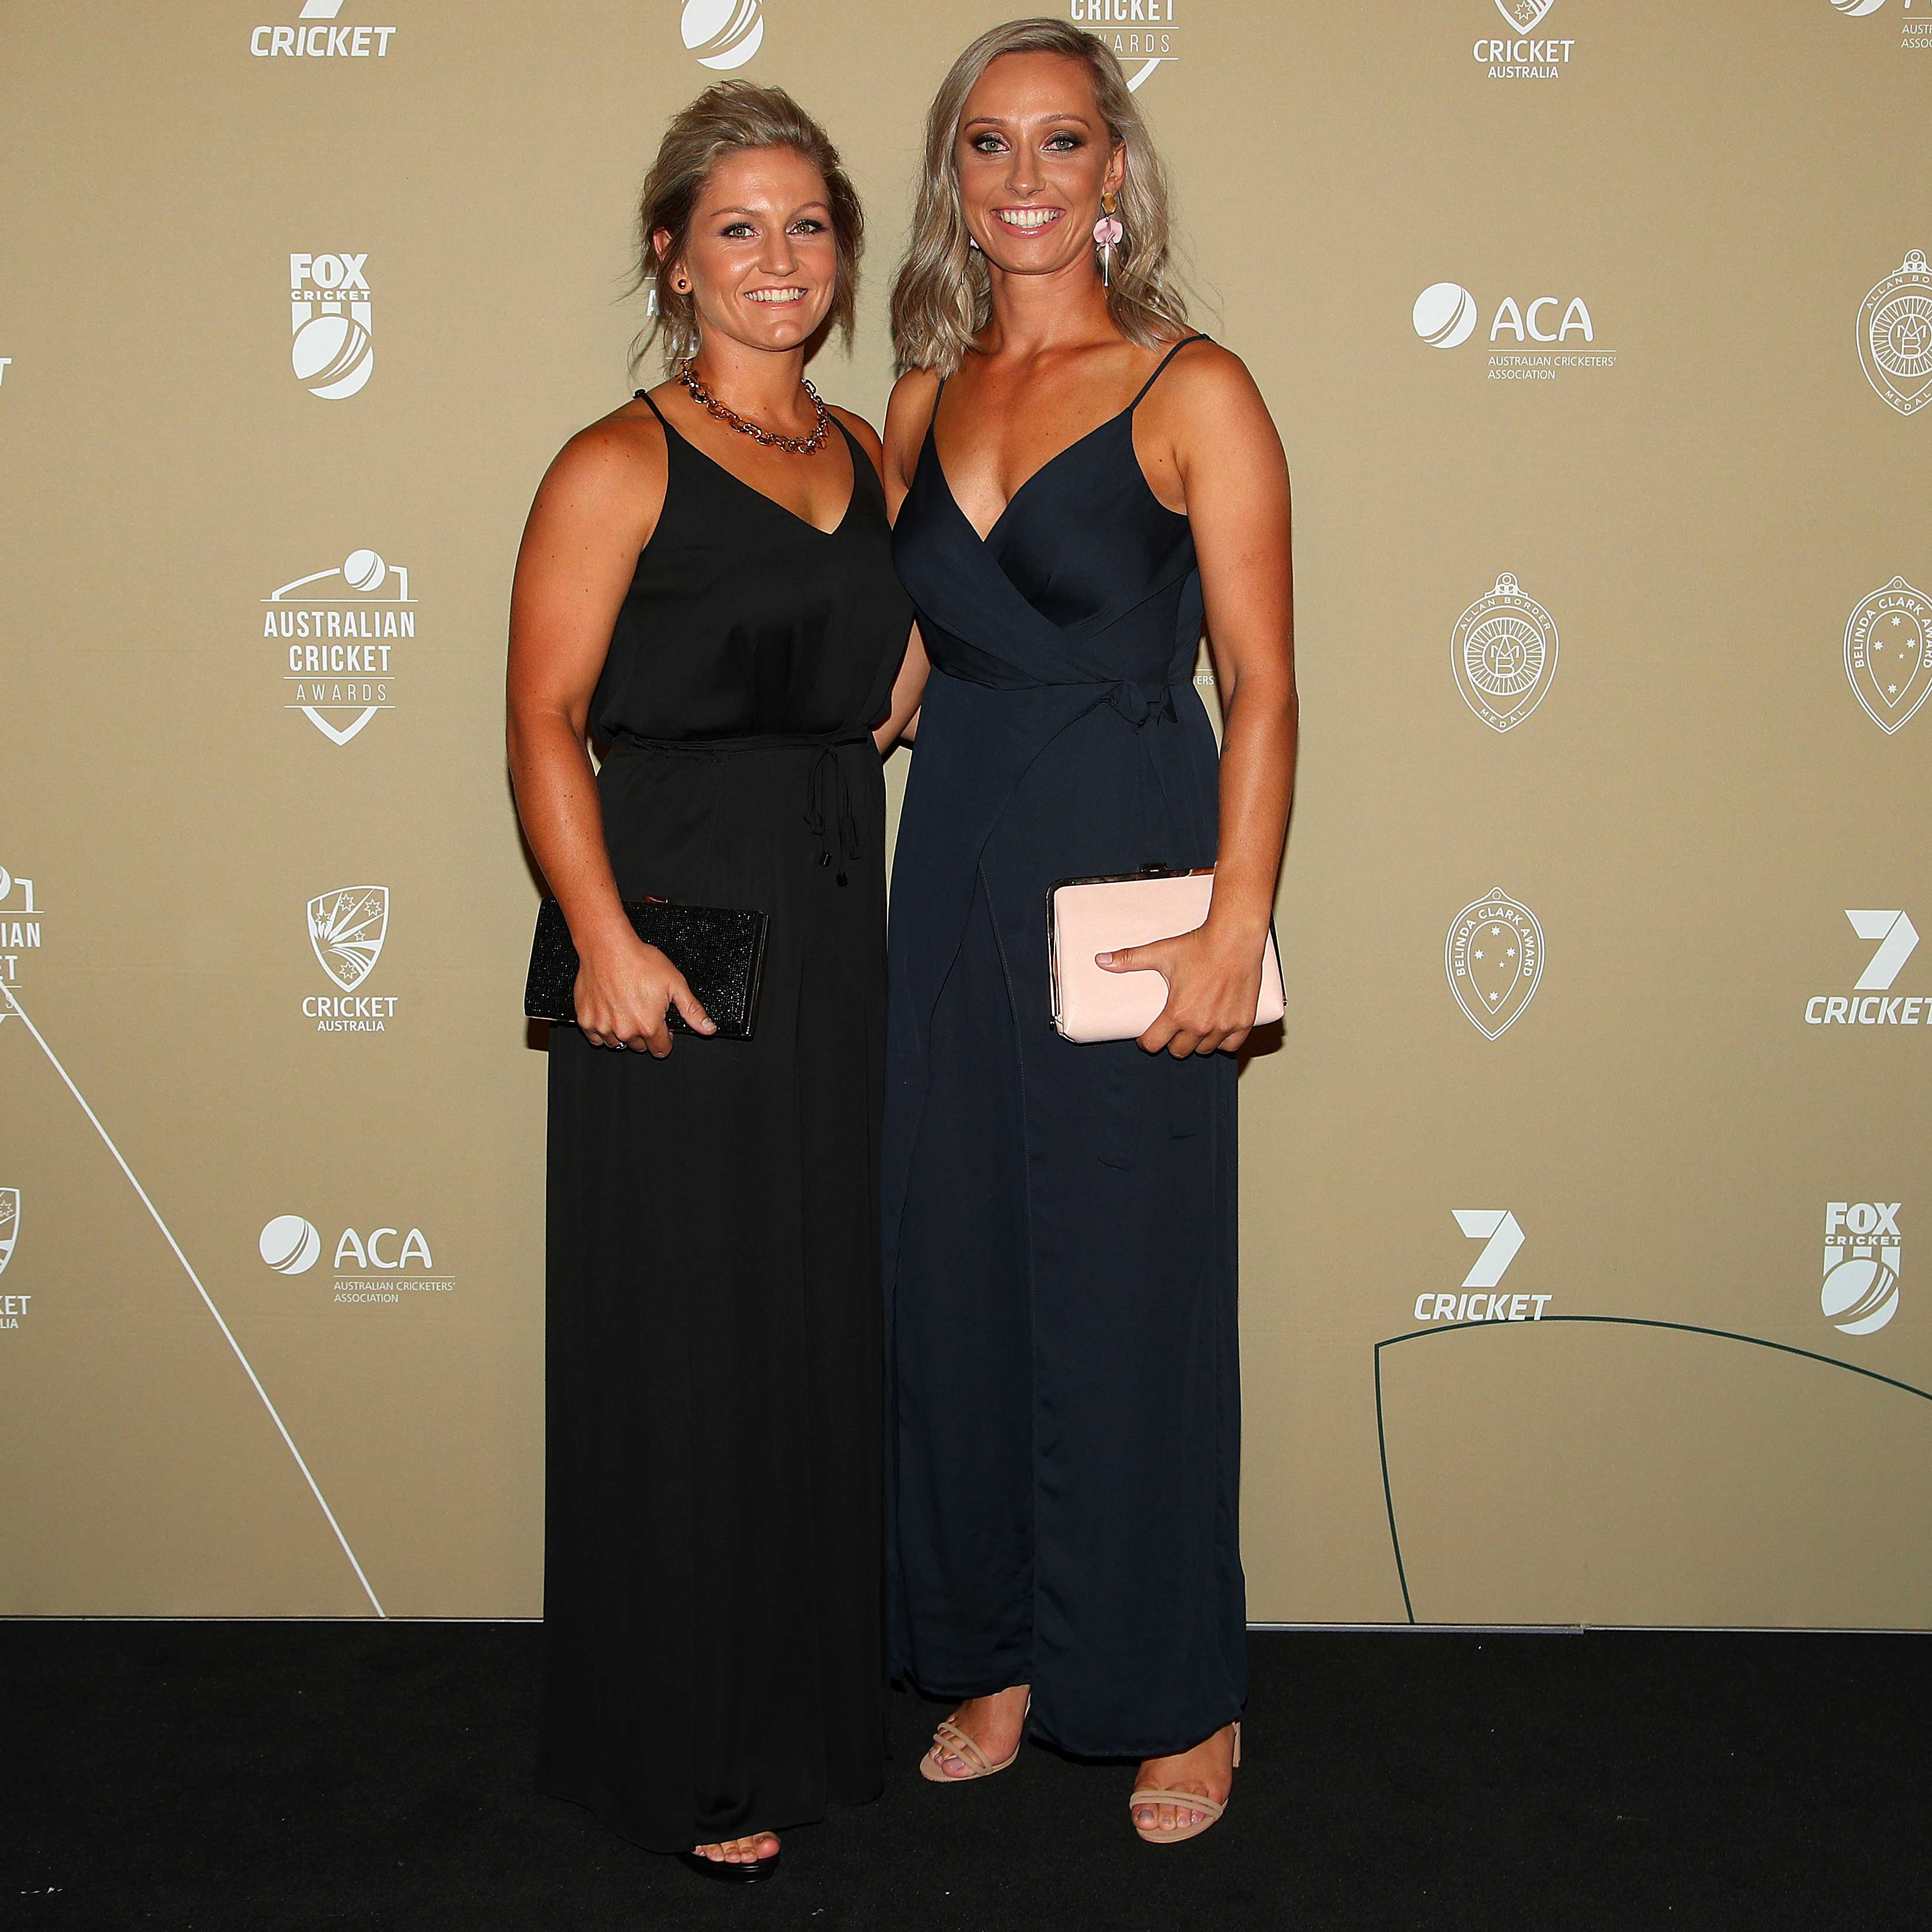 Ashleigh Gardner (right) and partner Bridget Patterson // Getty